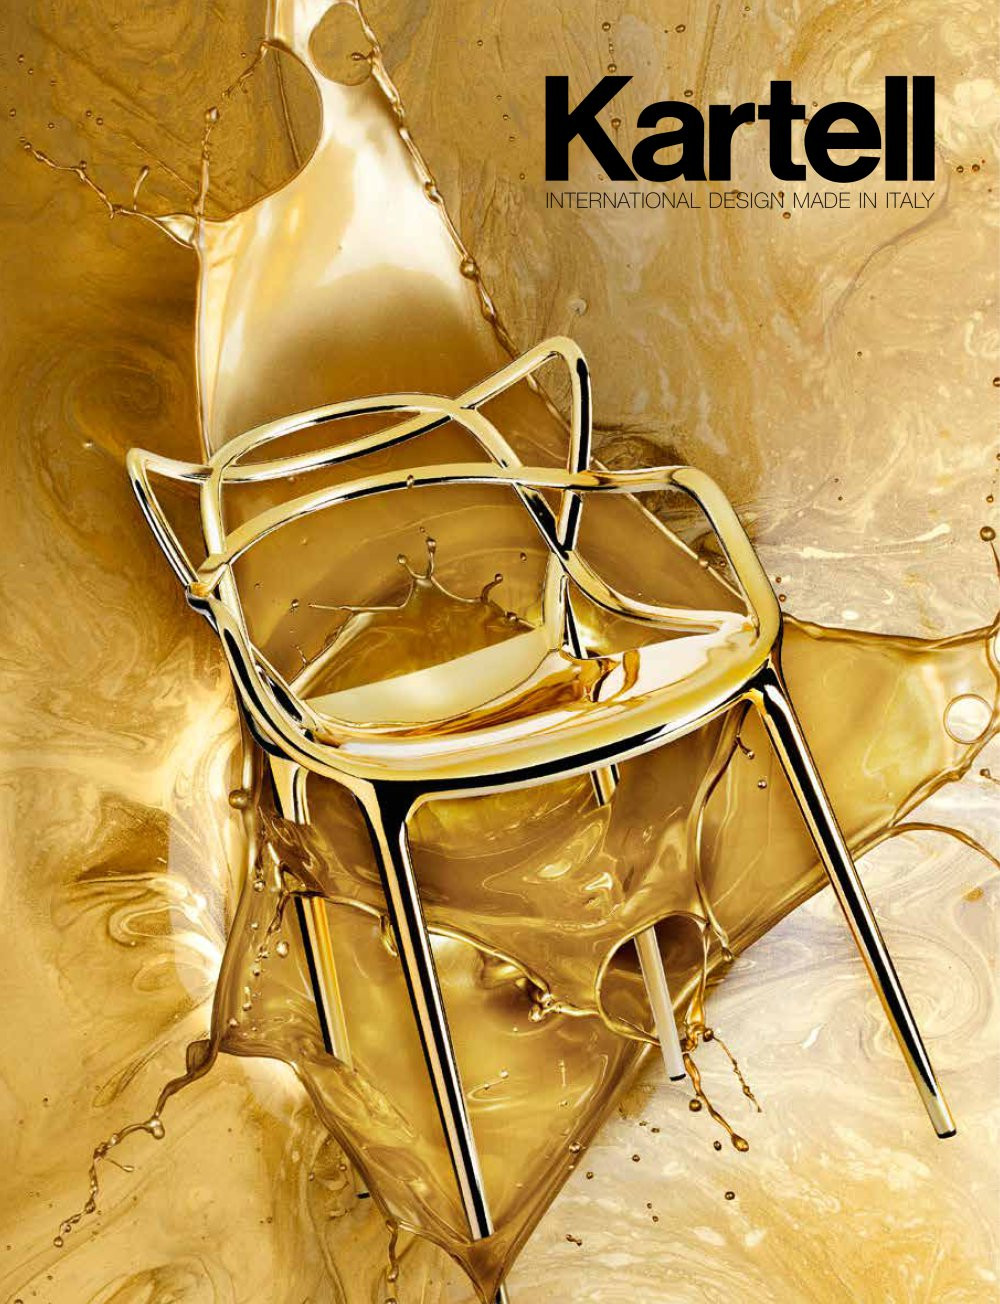 Kartell Shibuya Vase Of Kartell International Design Made In Italy Kartell Pdf within Kartell International Design Made In Italy 1 135 Pages